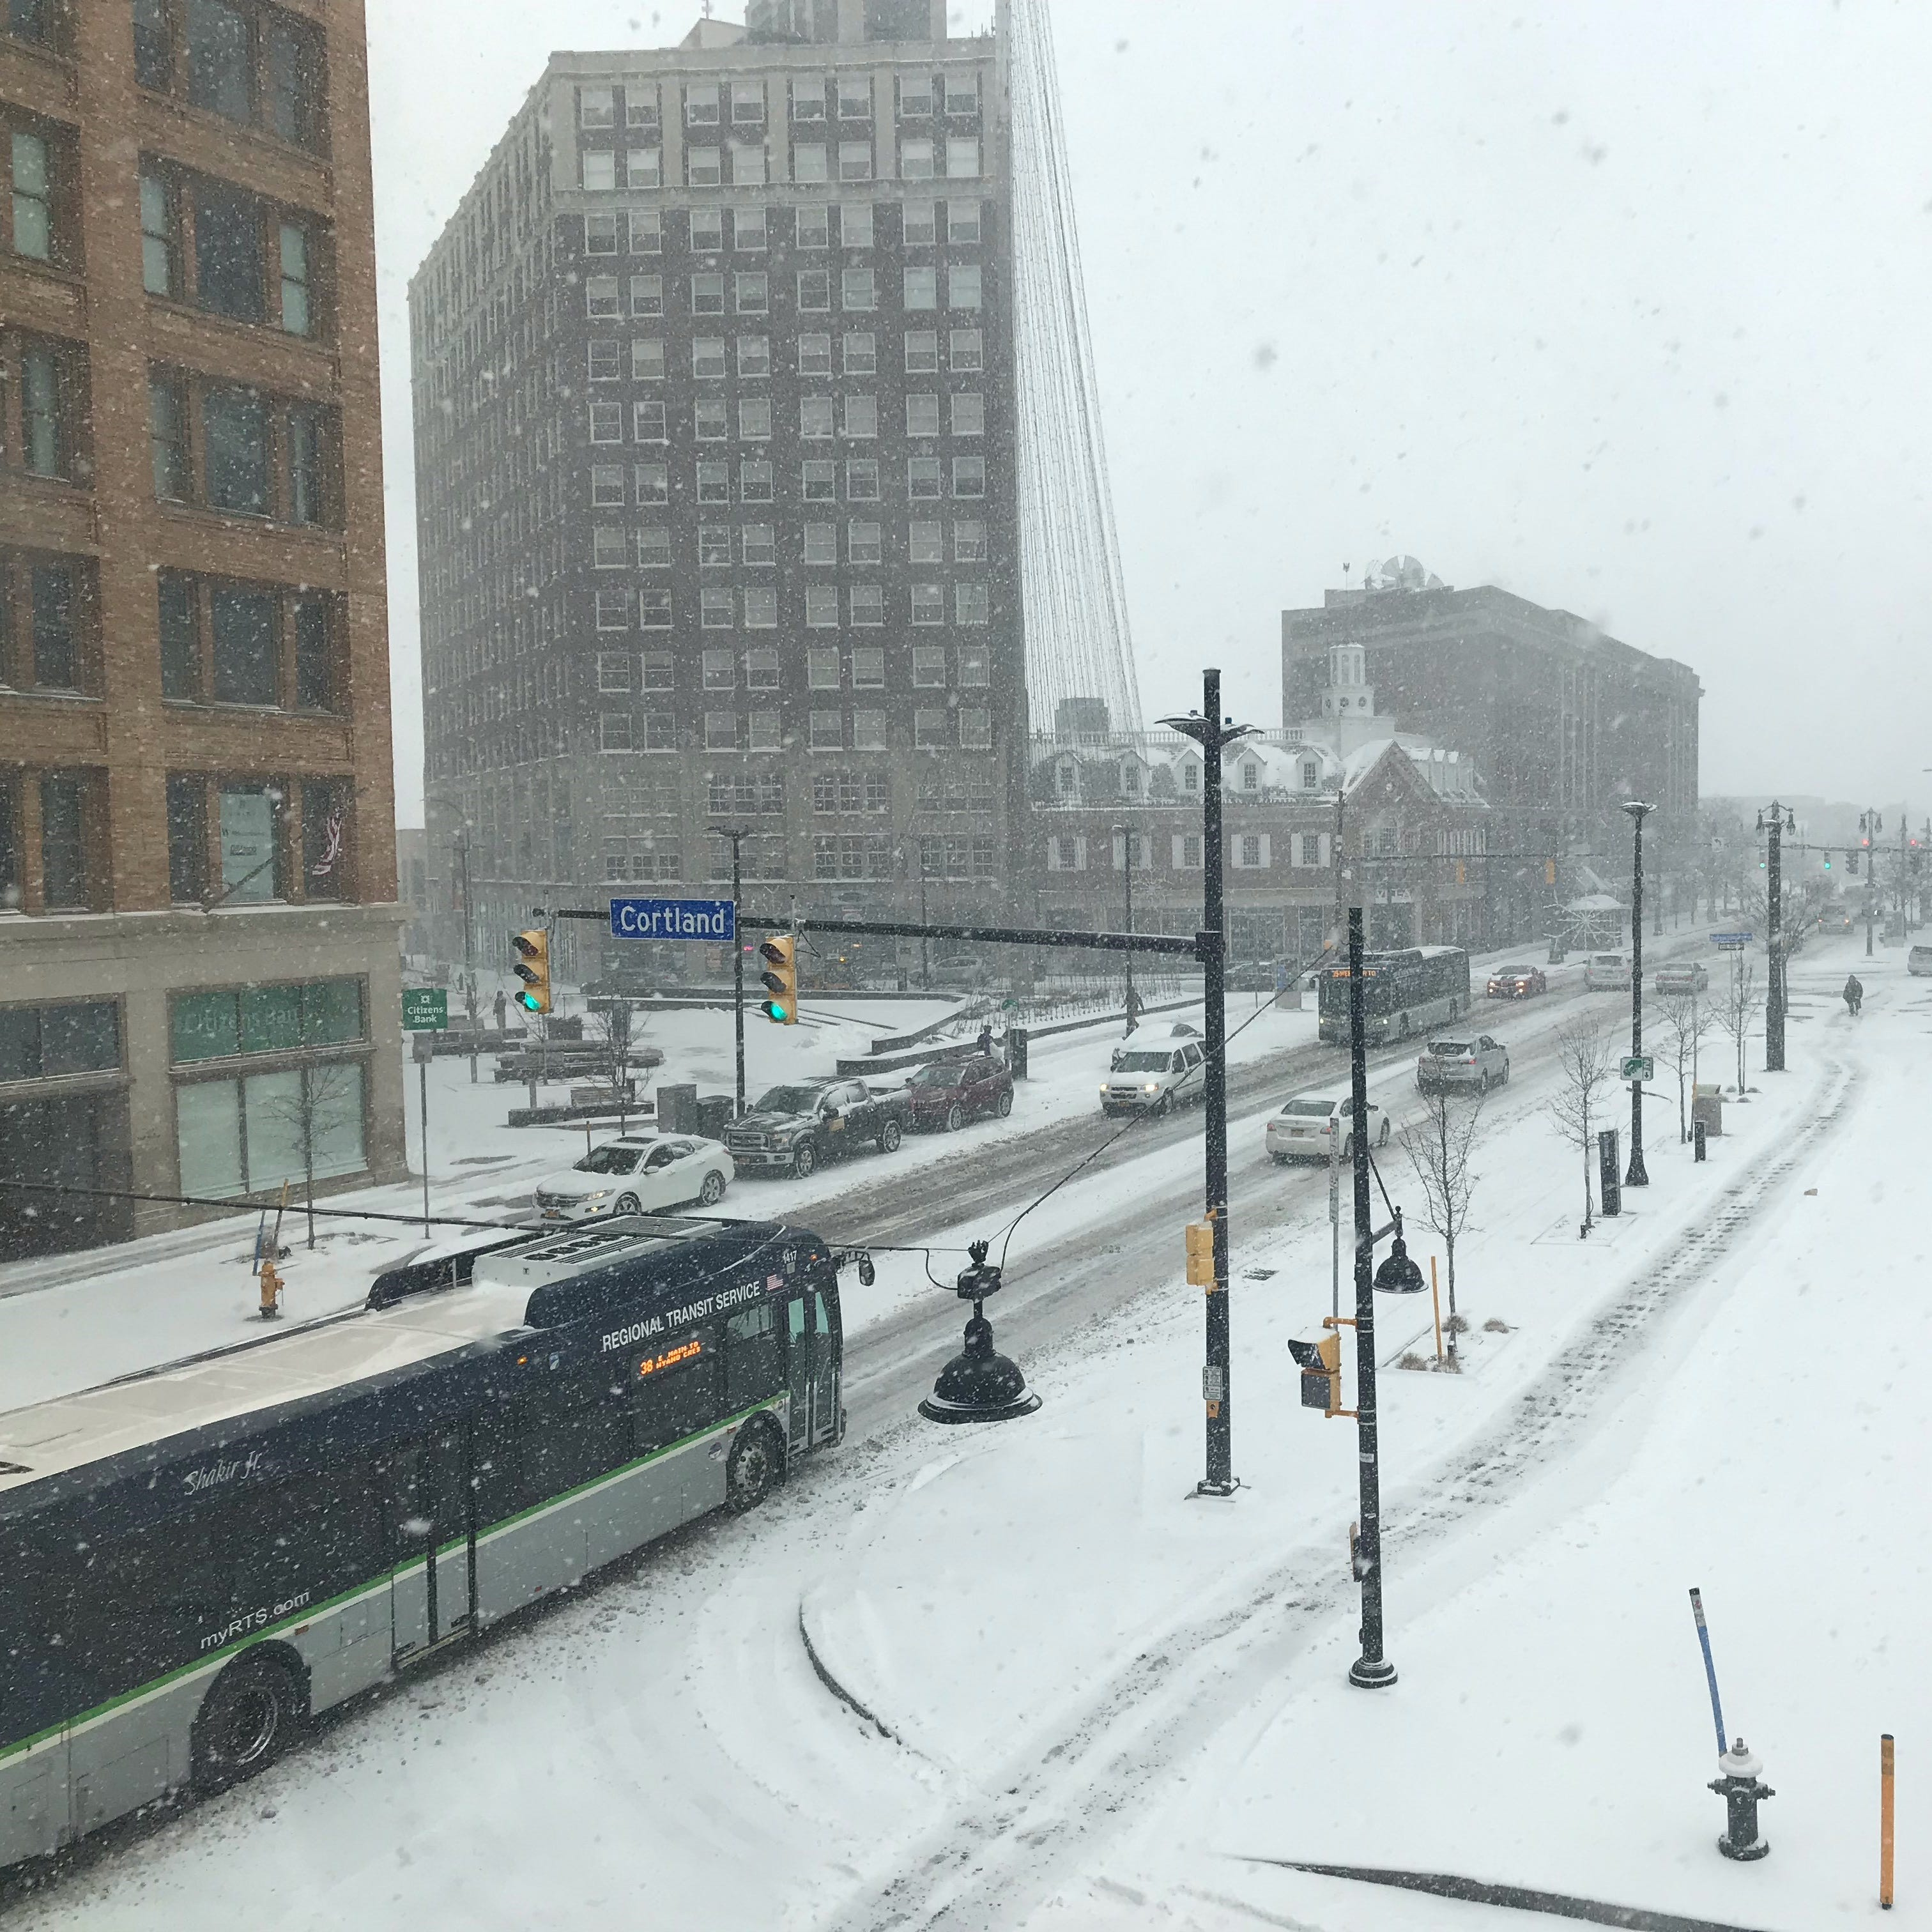 Weather alert issued as more snow moves through area; travel conditions could deteriorate quickly